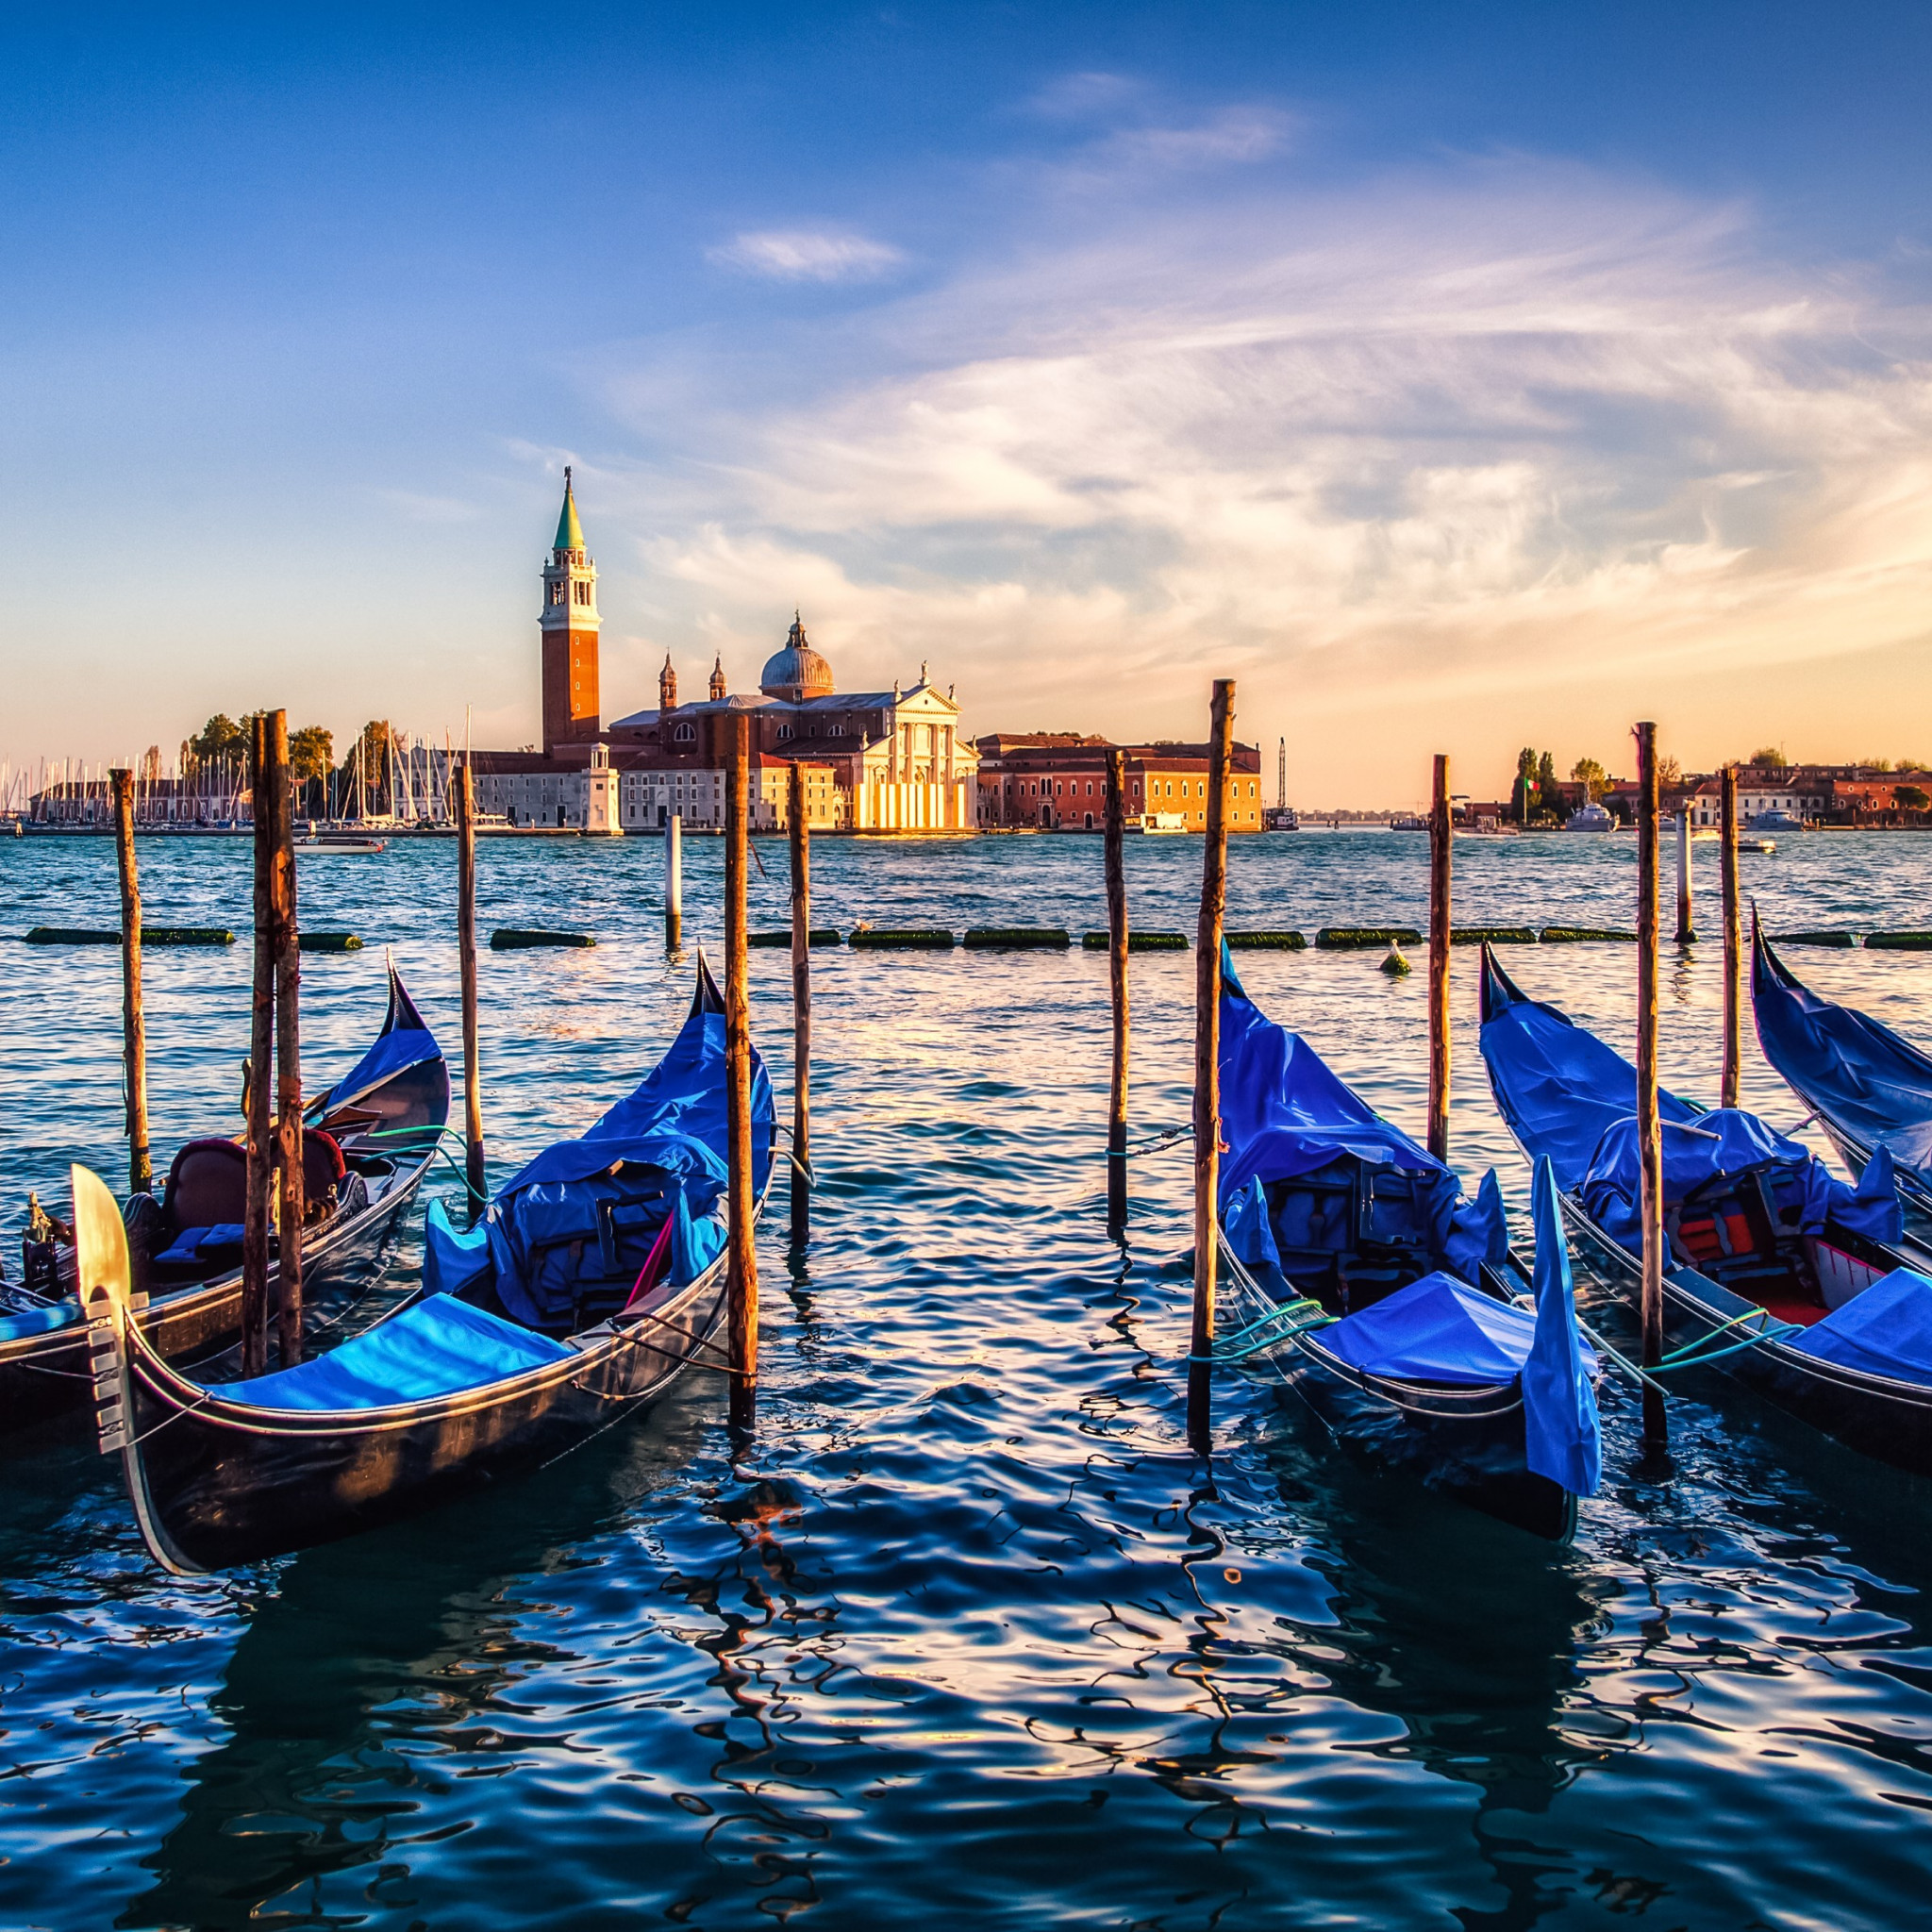 Gondolas from Venice at sunset wallpaper 2048x2048